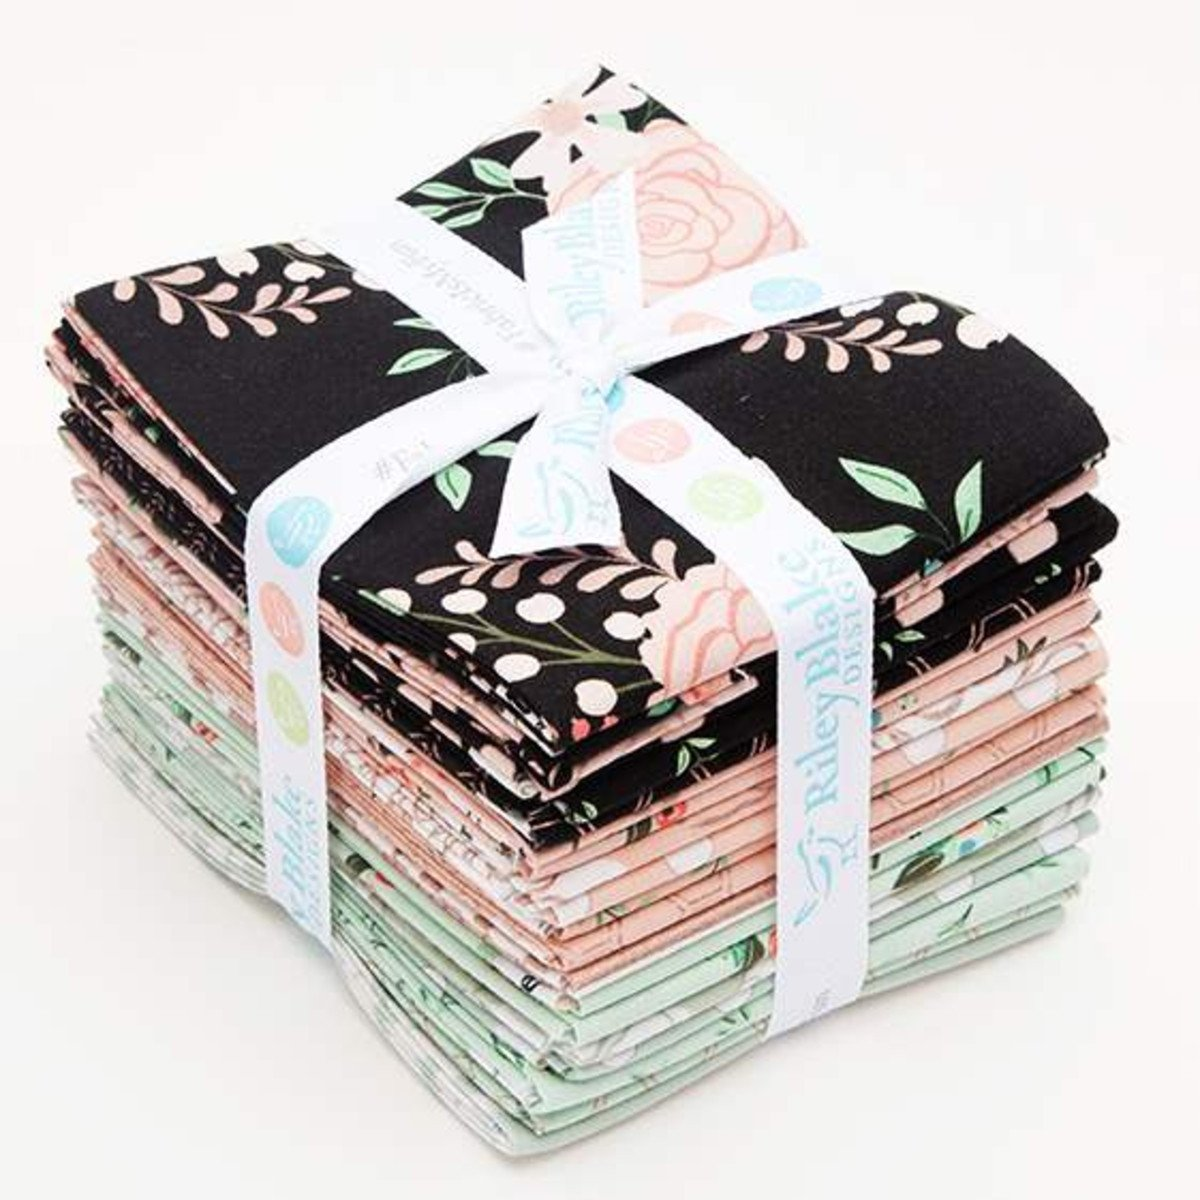 Bliss - Half Yard Bundle